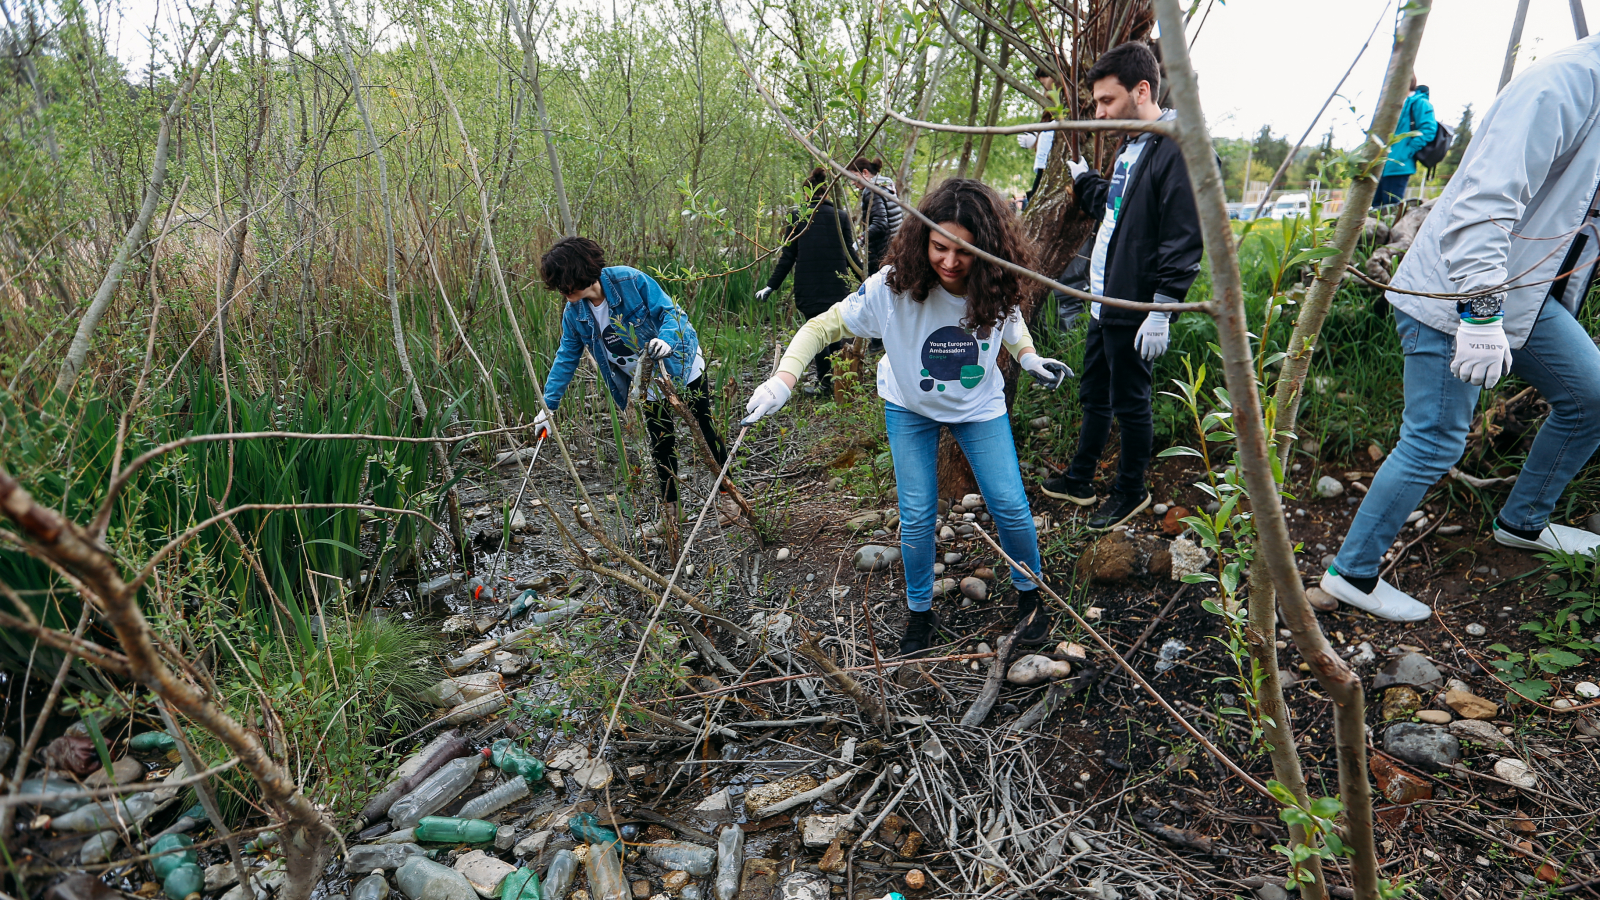 Activists gathered in Kutaisi on 22 April 2019 for waste clean-up action on Rioni River